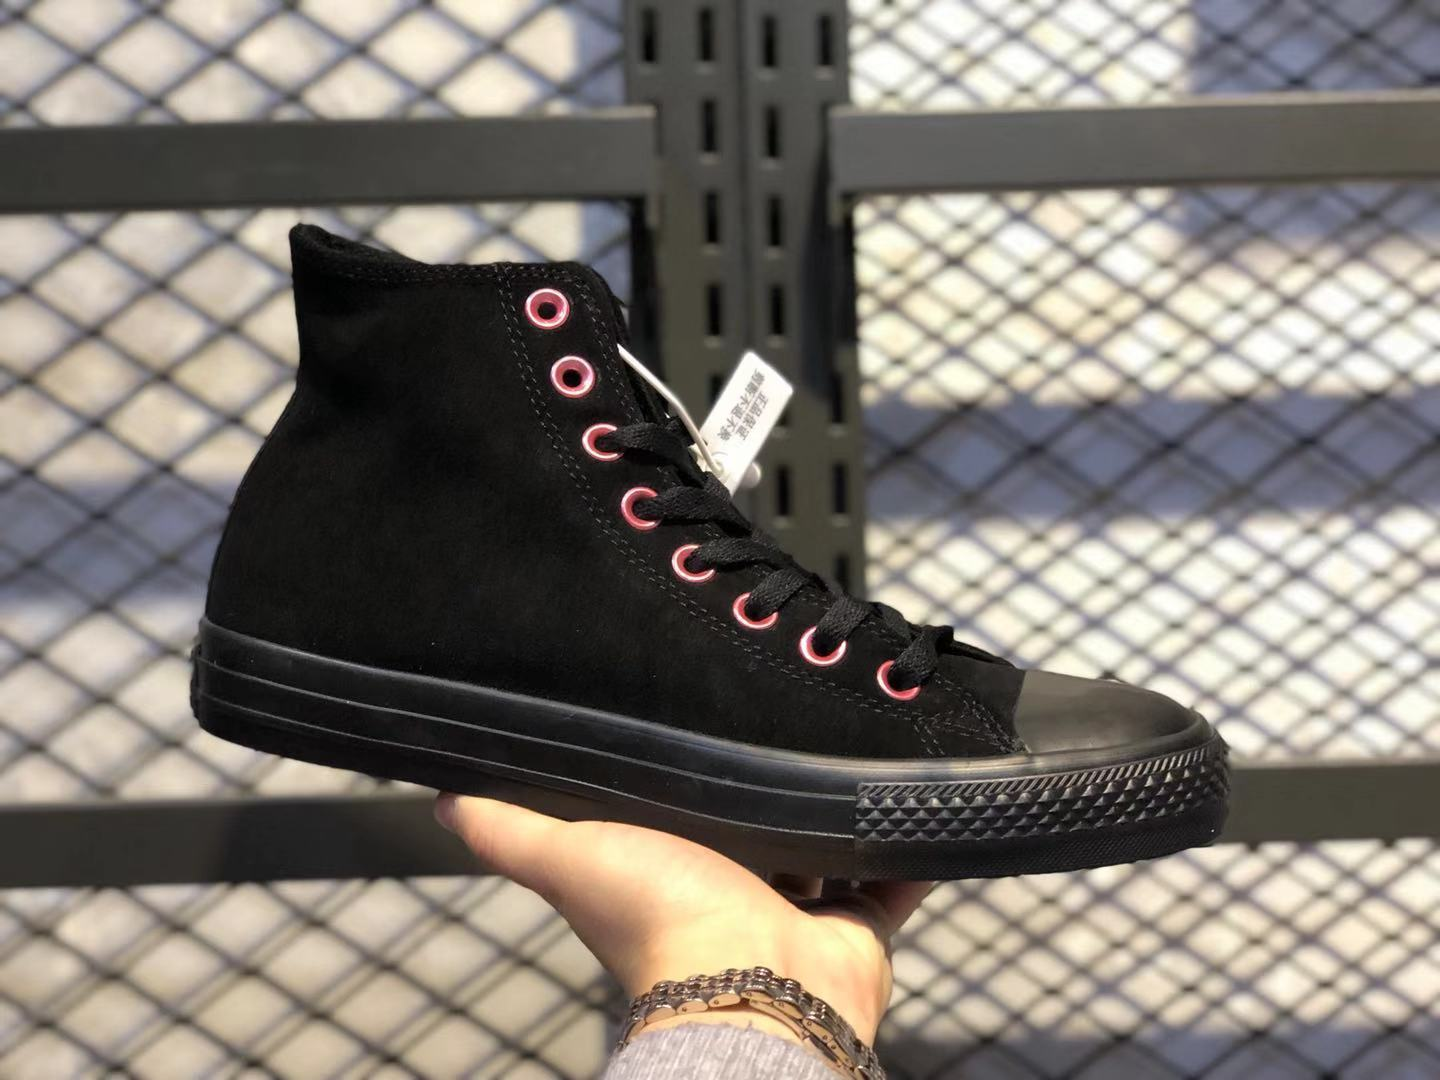 Converse Chunk Taylor All Star Core Black/Pink For Online Sale